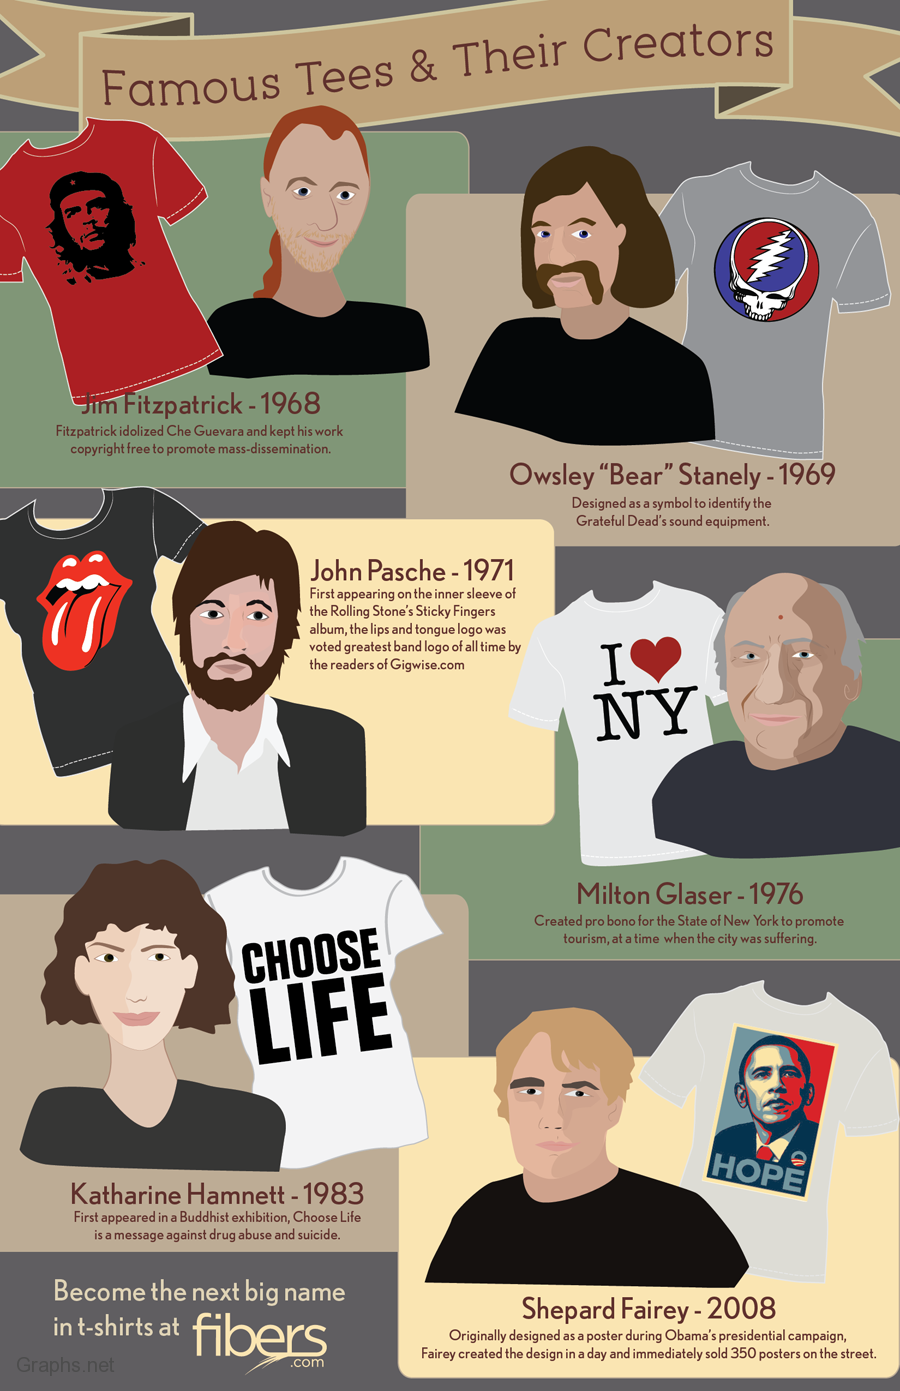 Top 6 Tees And Their Creators